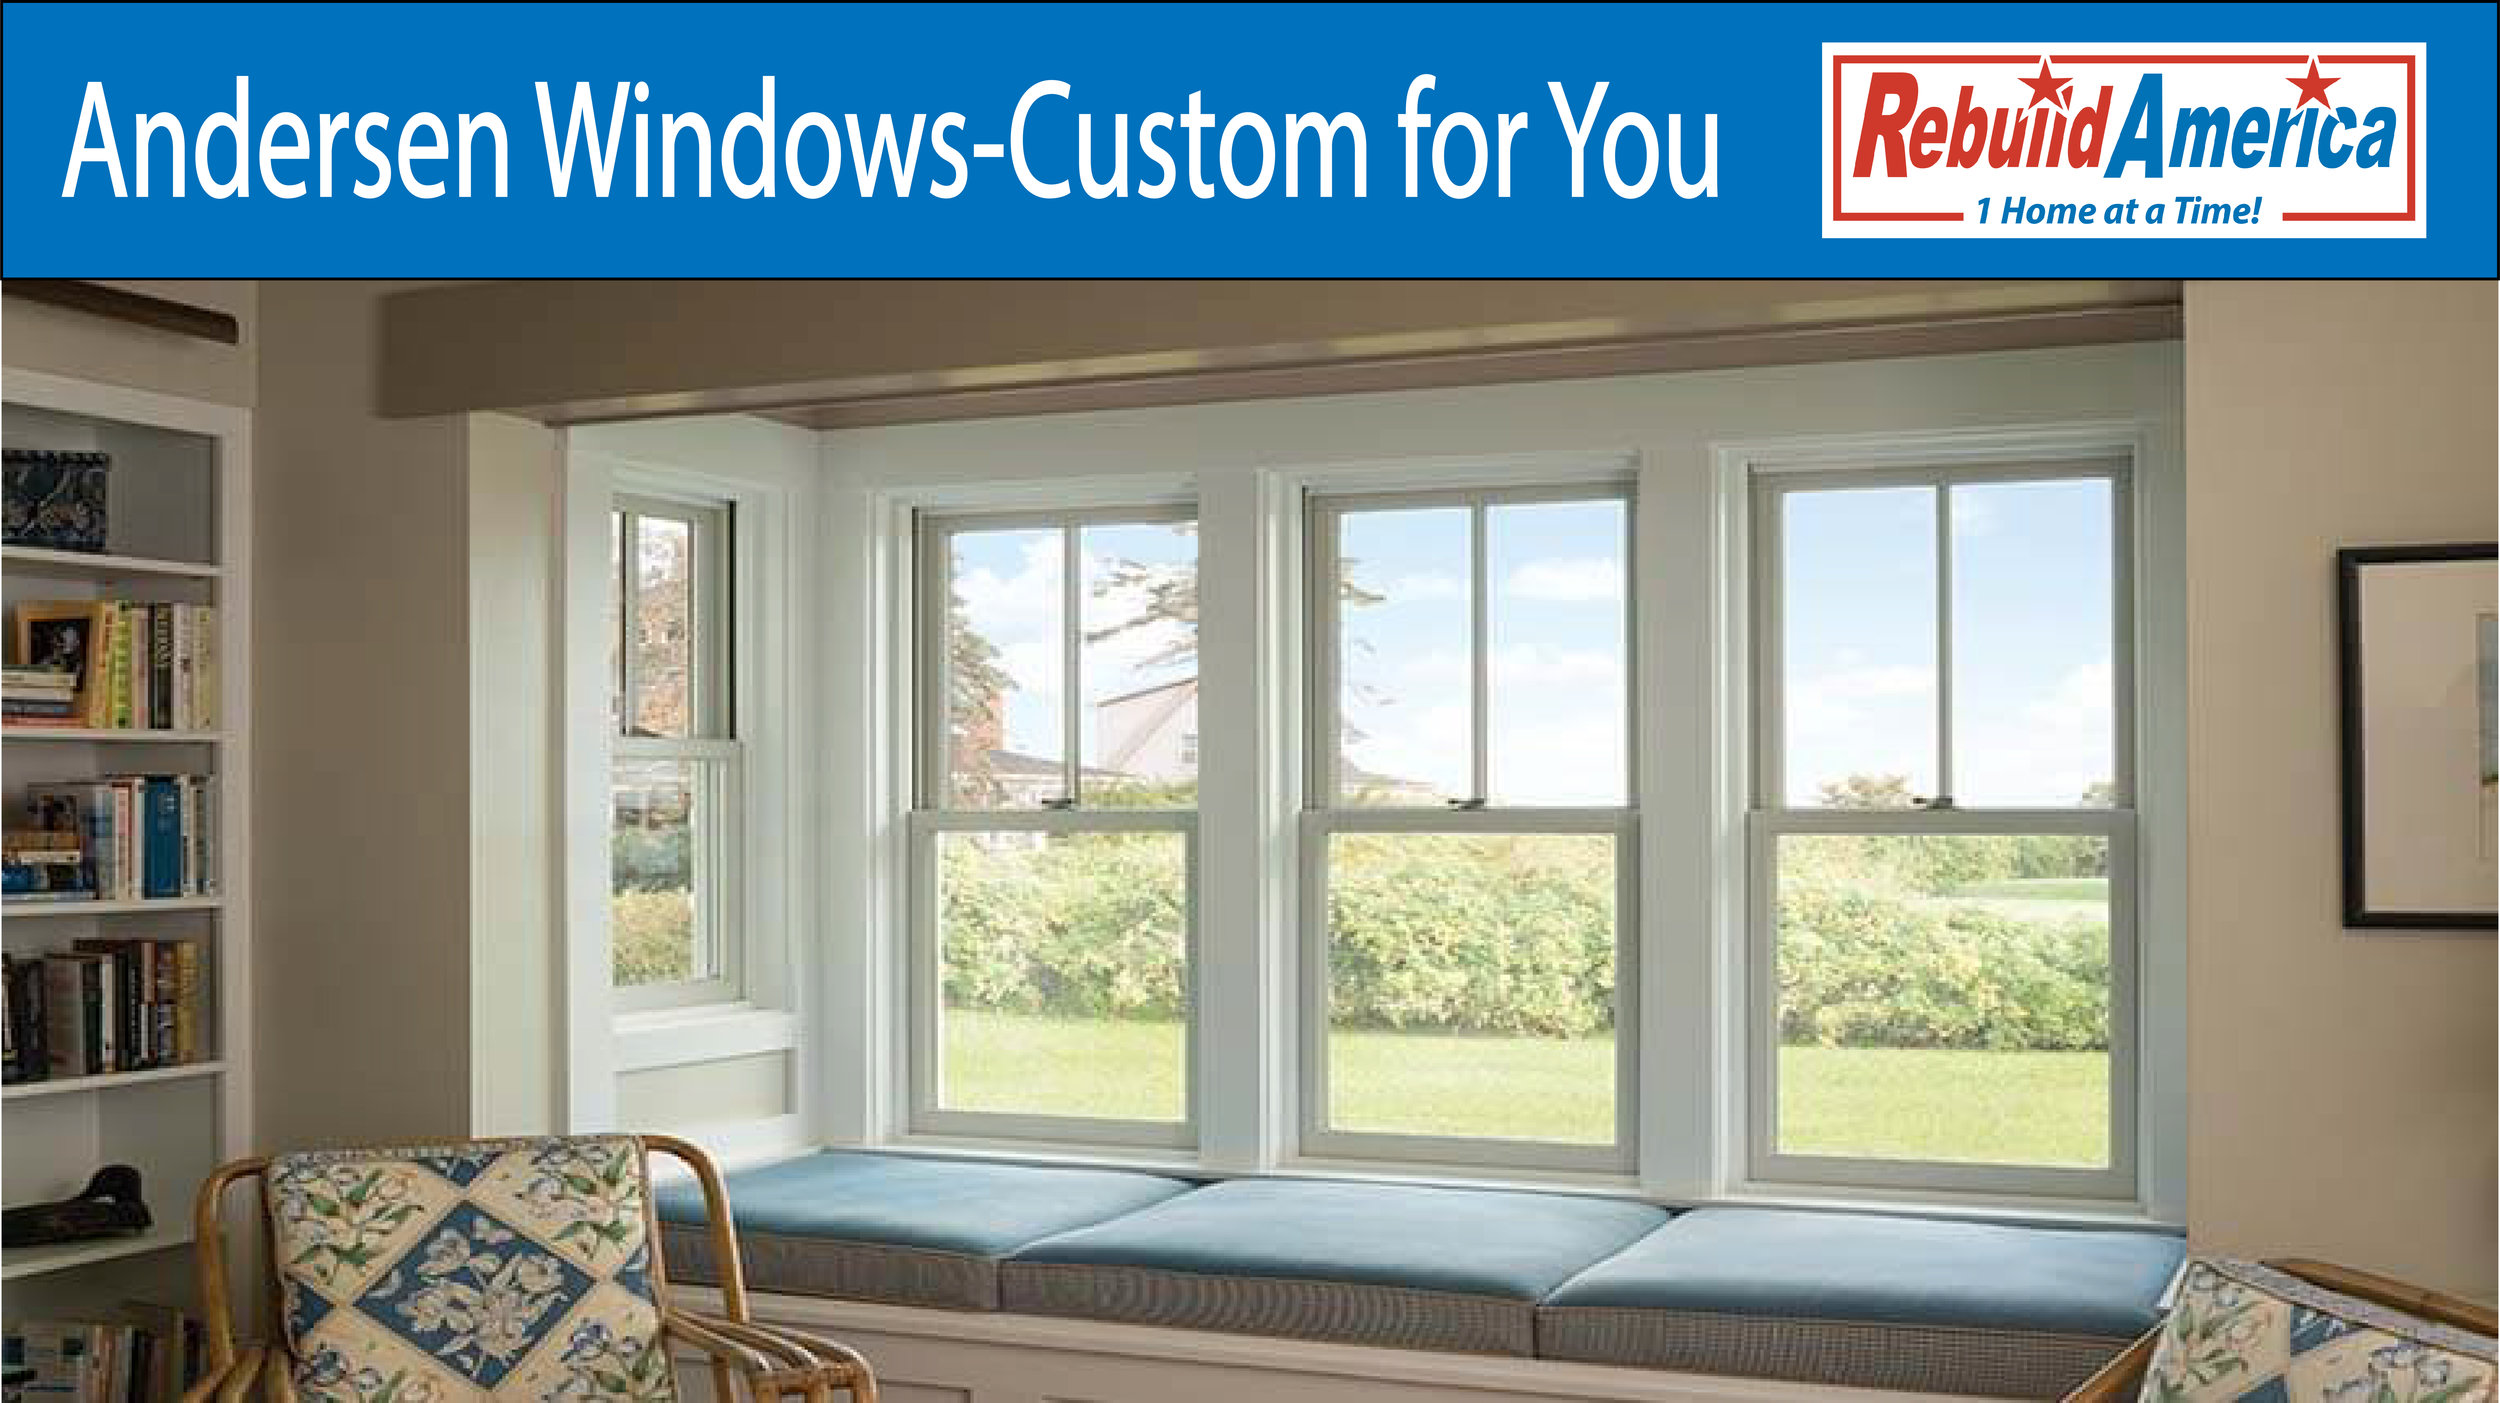 Andersen window custom for you w logo.jpg